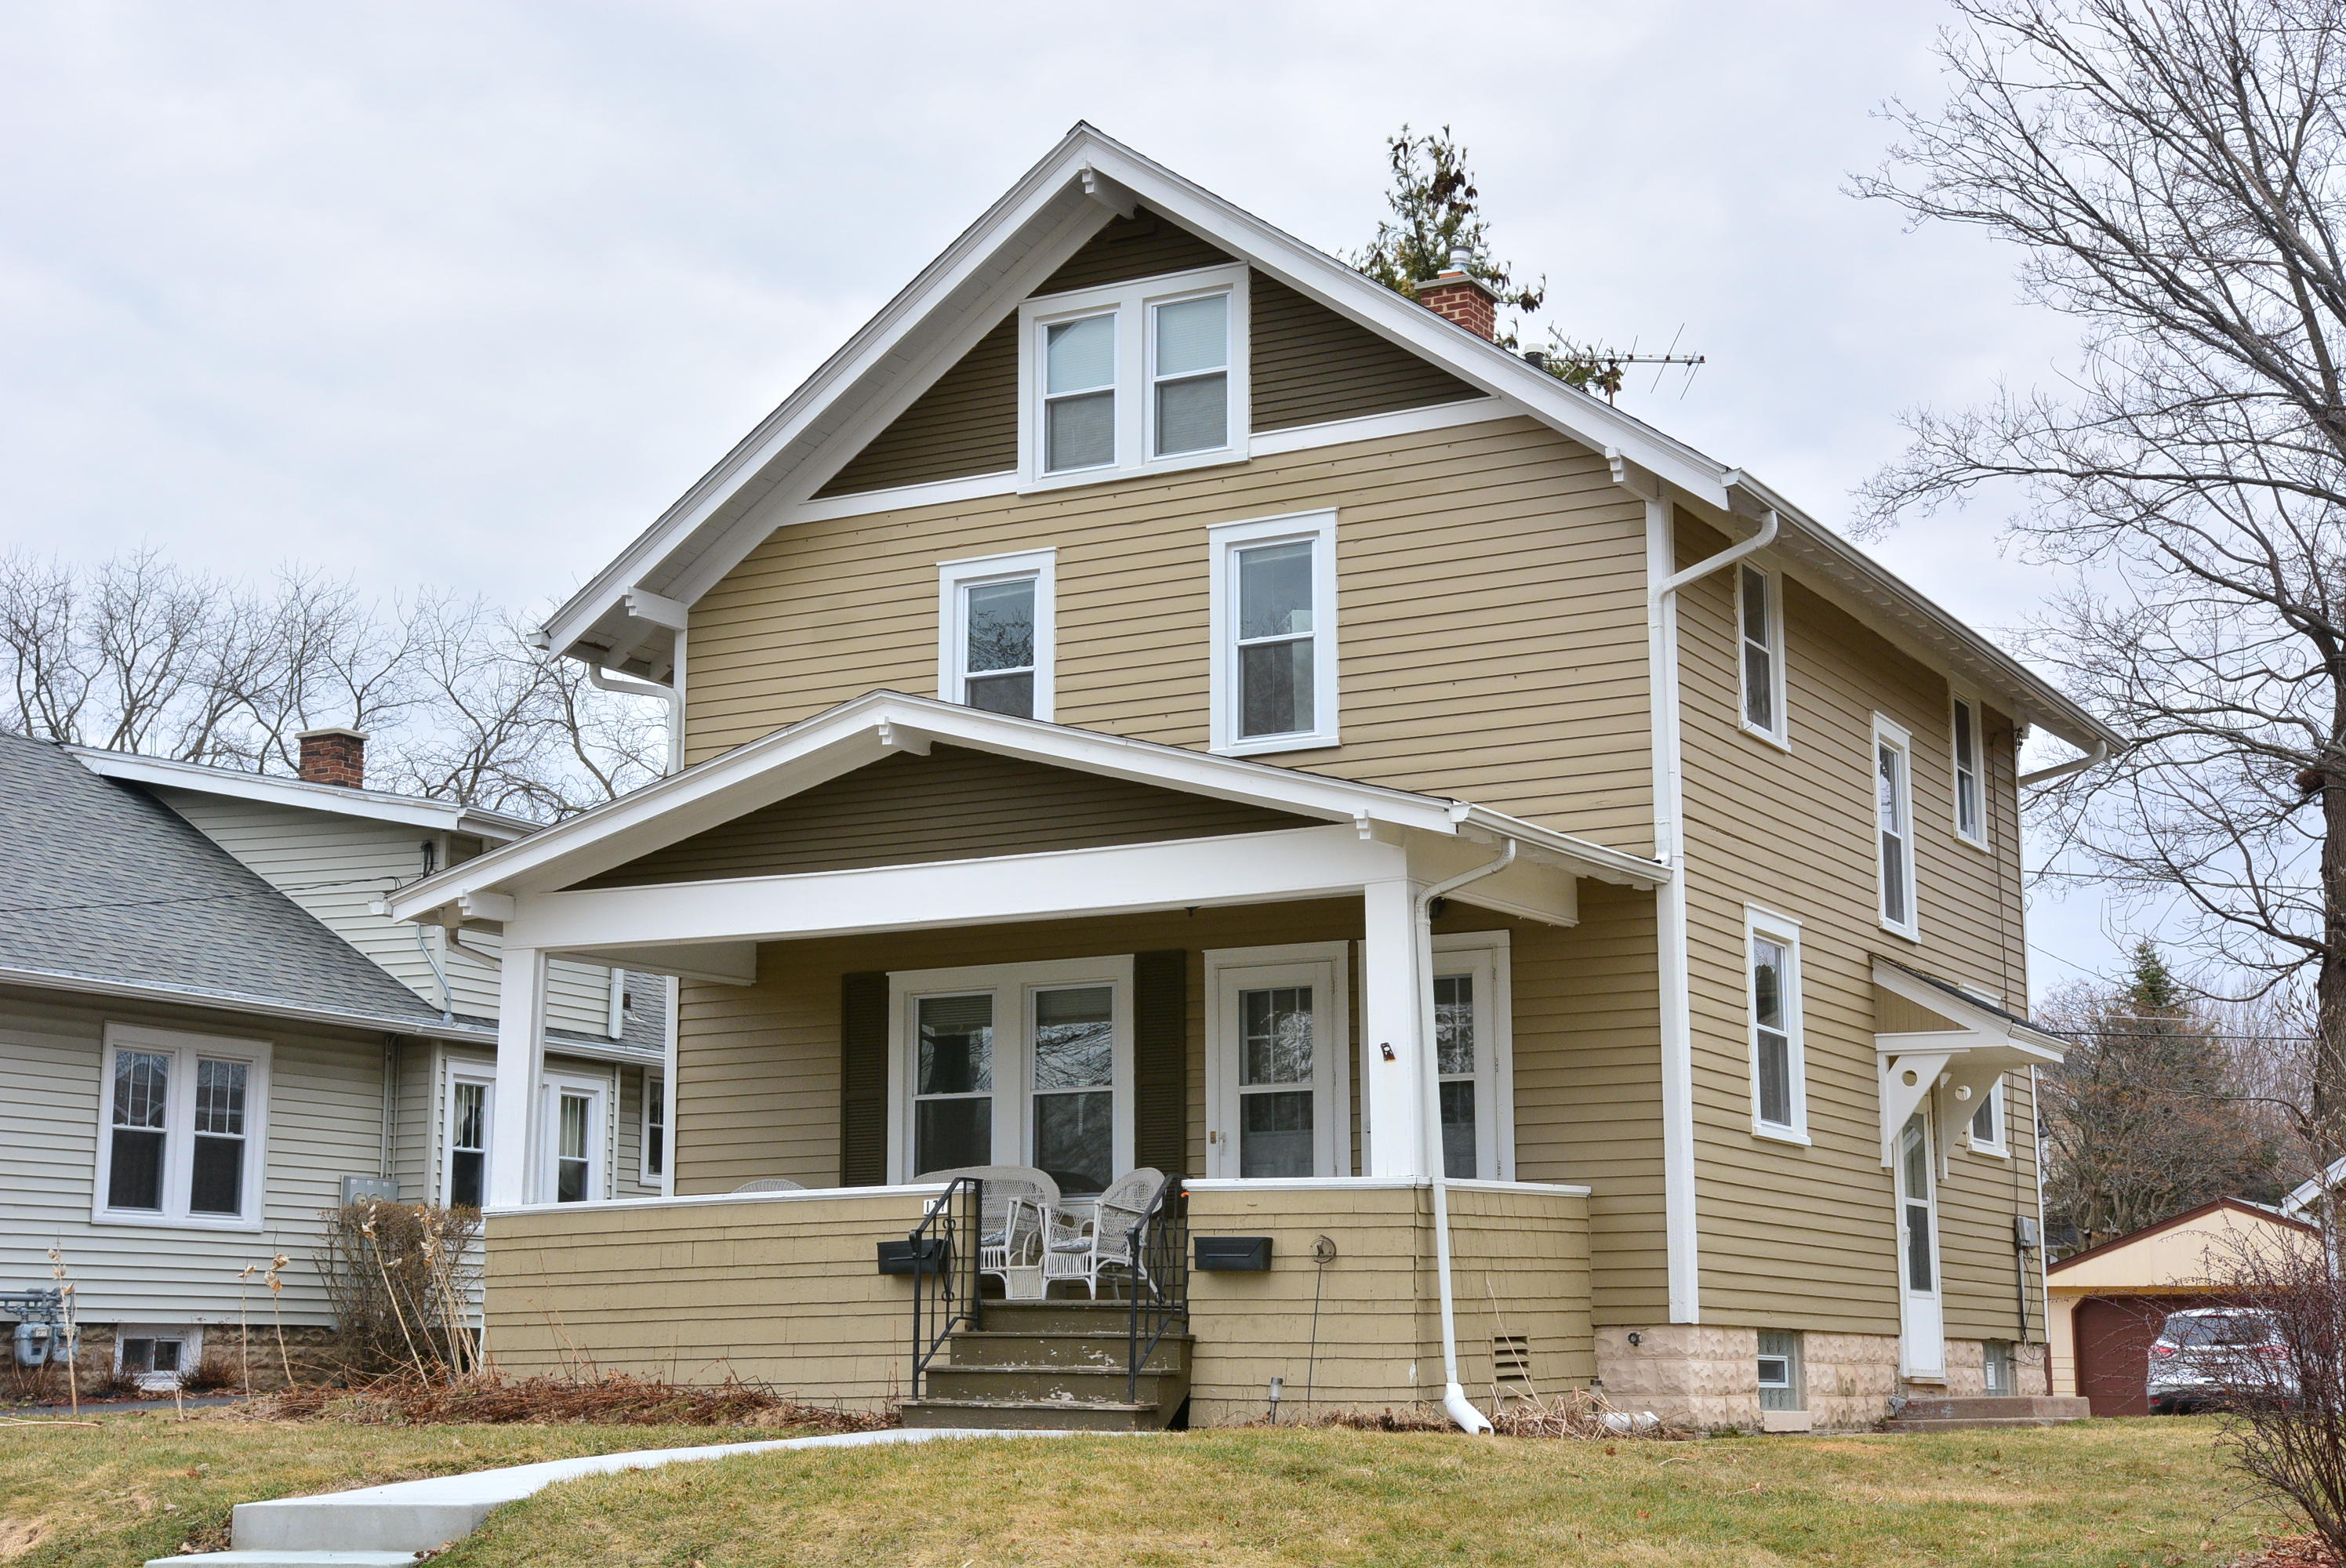 137 Newhall Ave, Waukesha, Wisconsin 53186, 1 Bedroom Bedrooms, 4 Rooms Rooms,1 BathroomBathrooms,Two-Family,For Sale,Newhall Ave,1,1629052